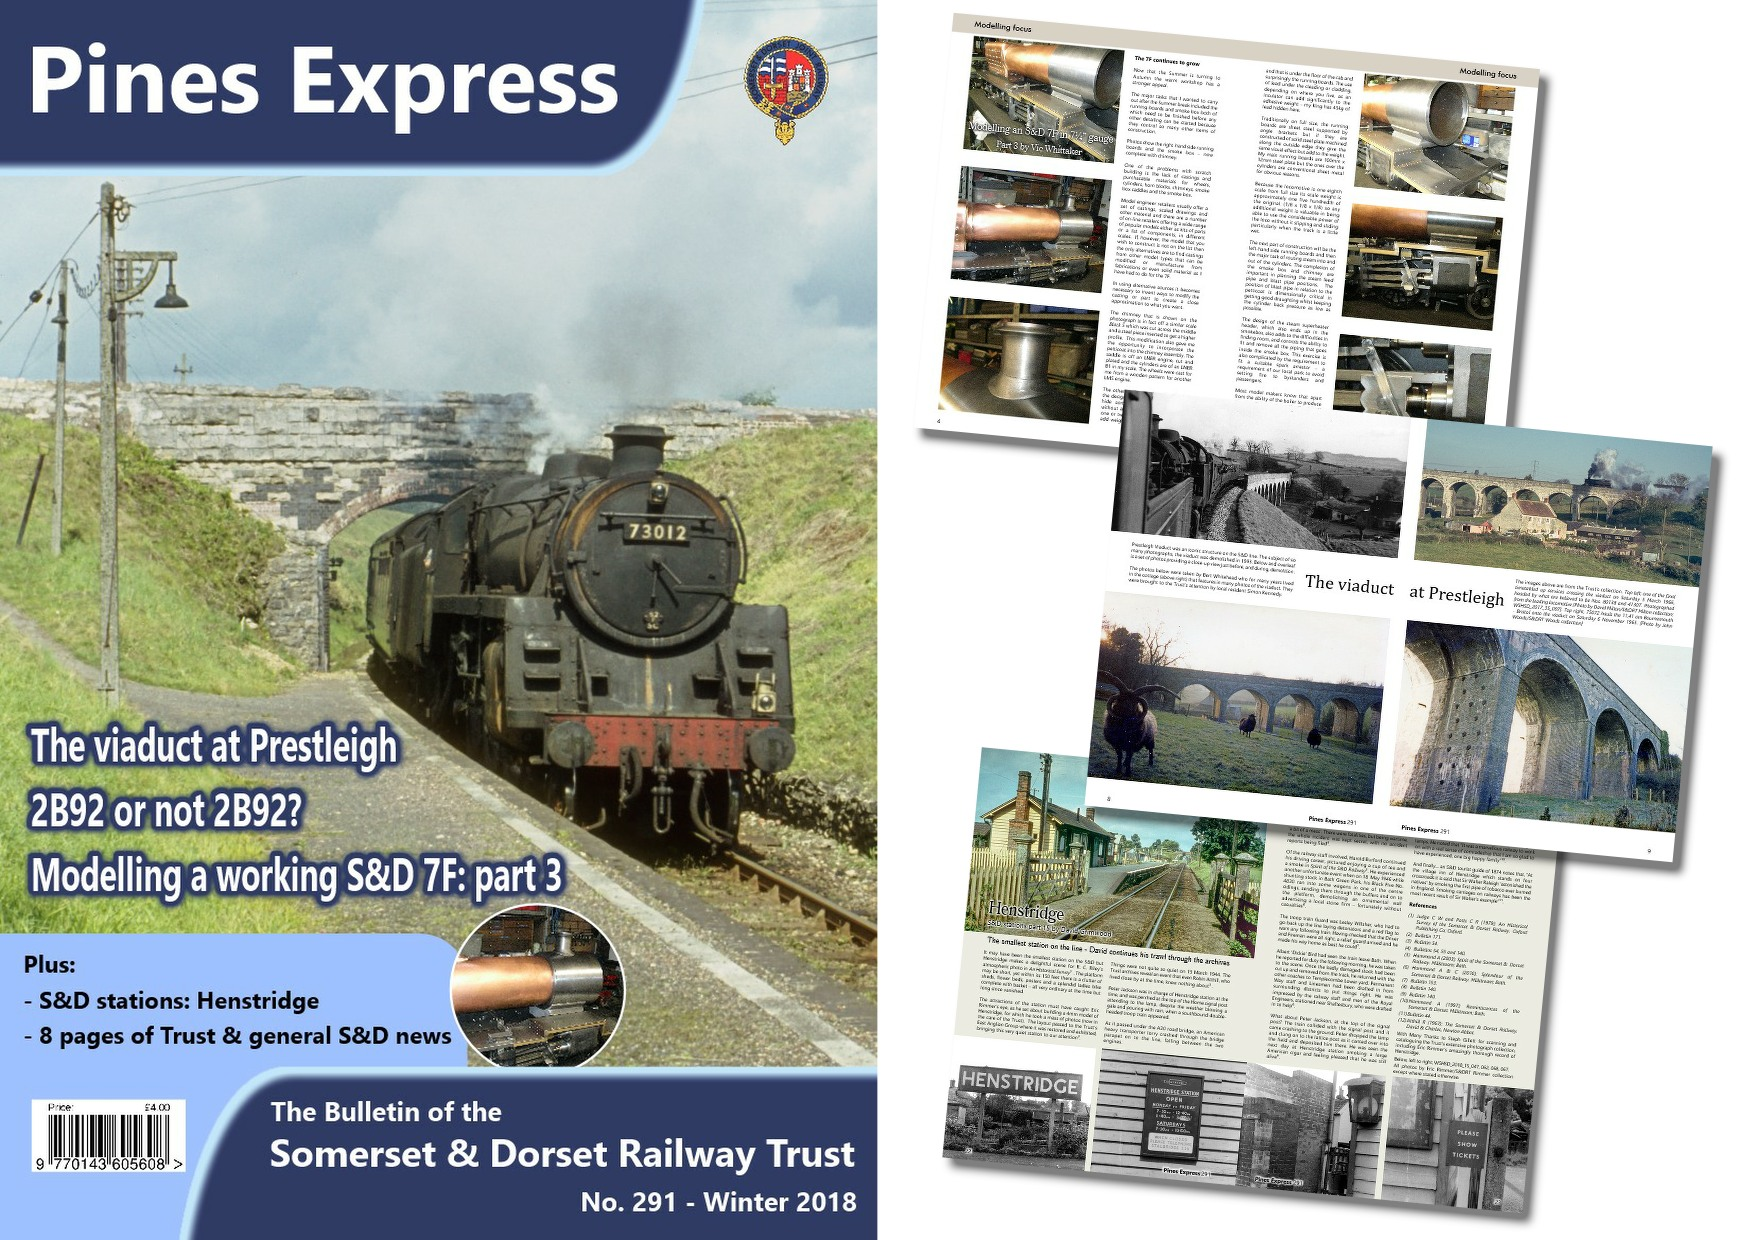 Pines Express issue 291 and some of the pages inside this issue.